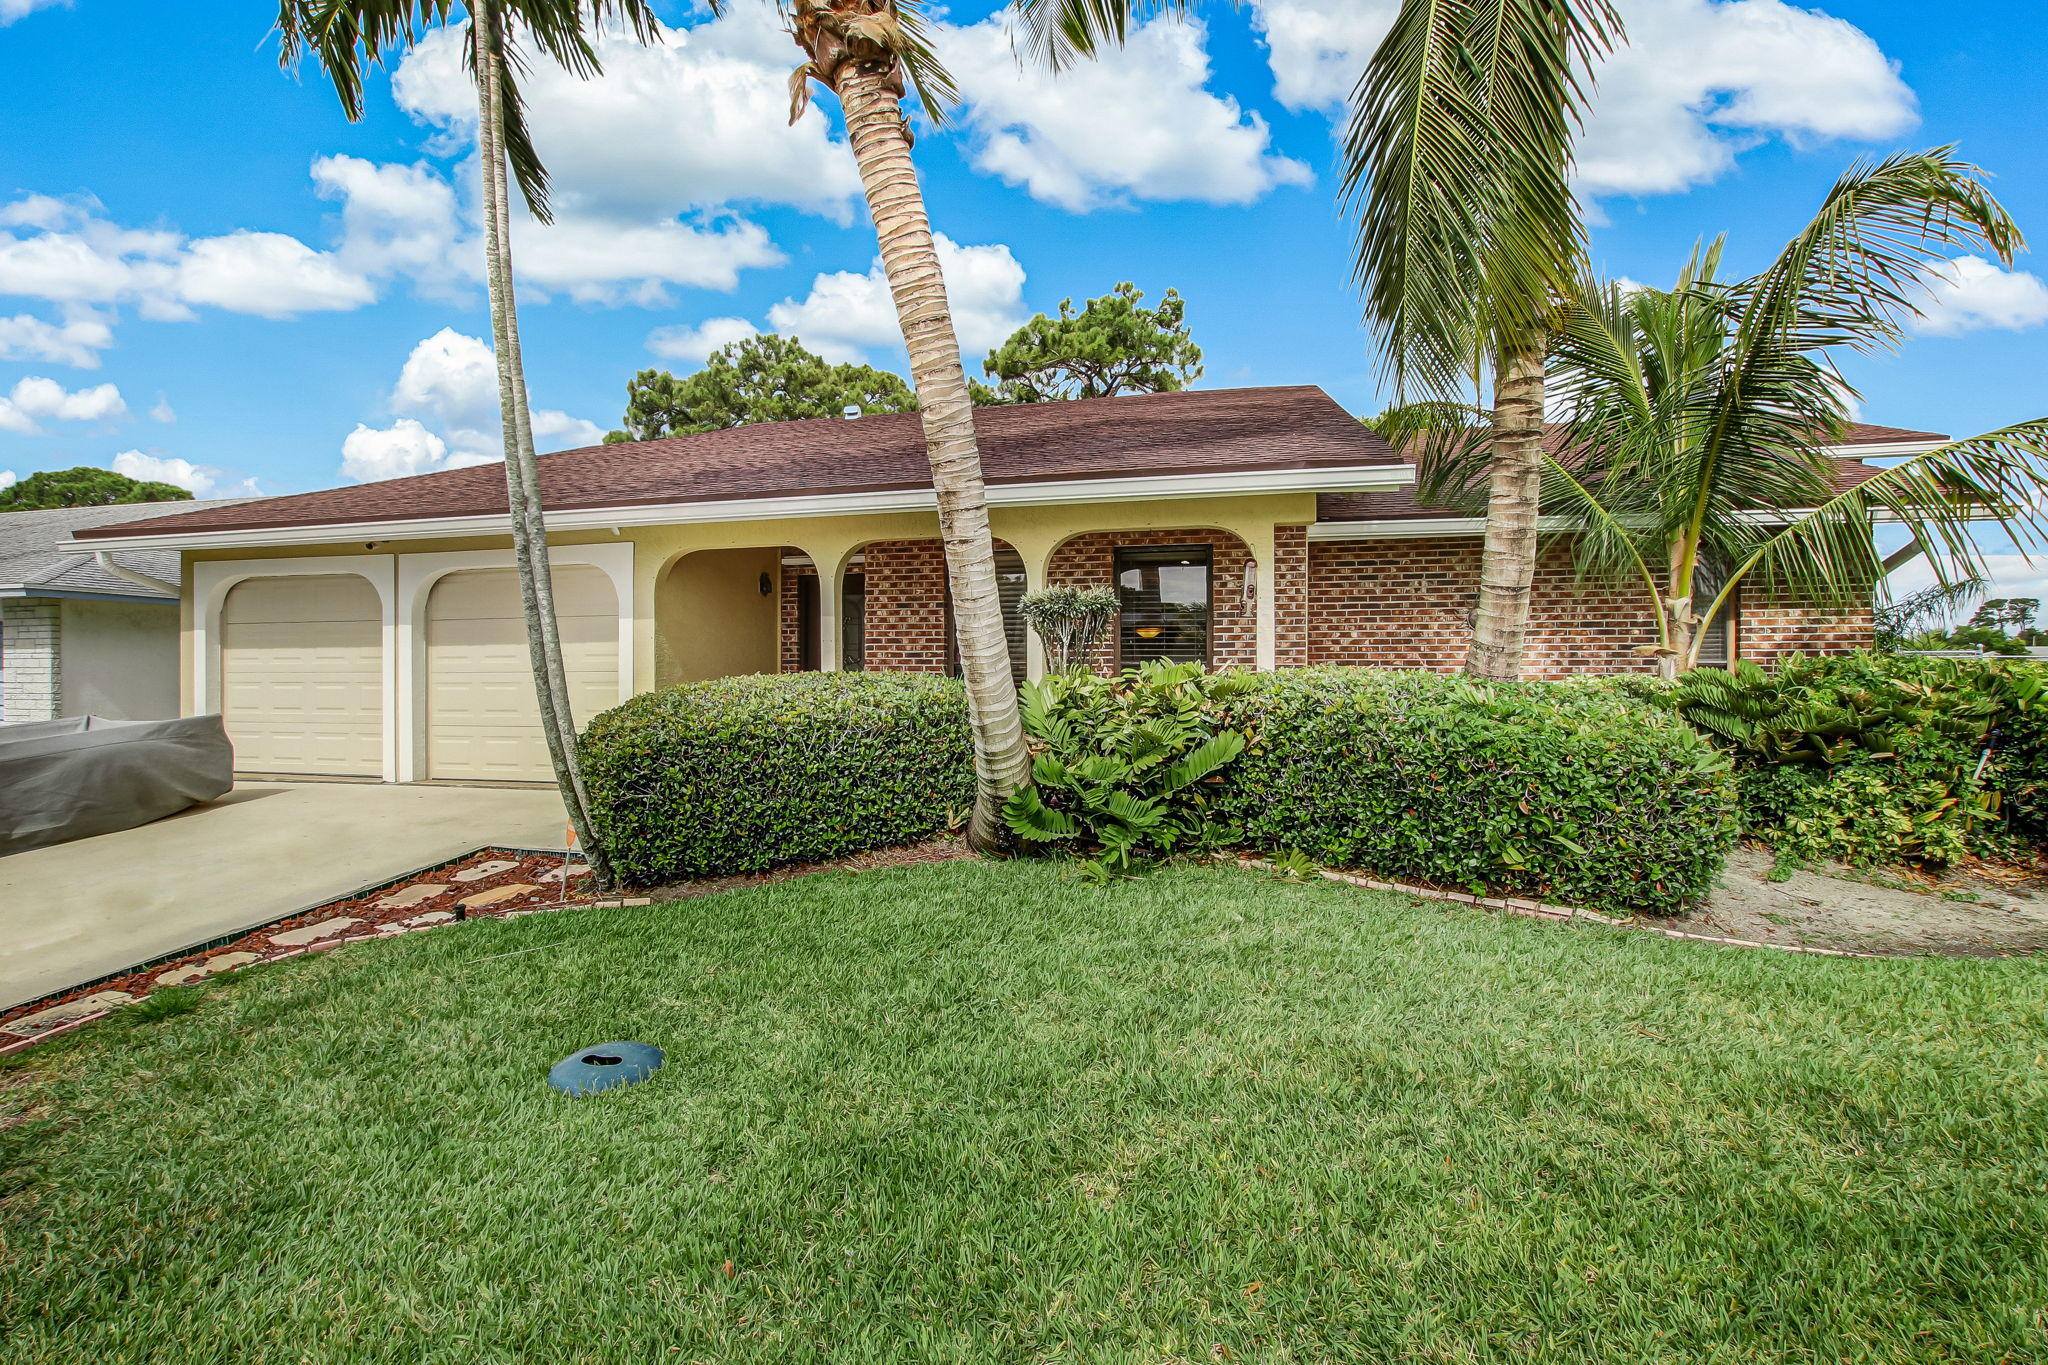 115  Timber Run  For Sale 10709985, FL